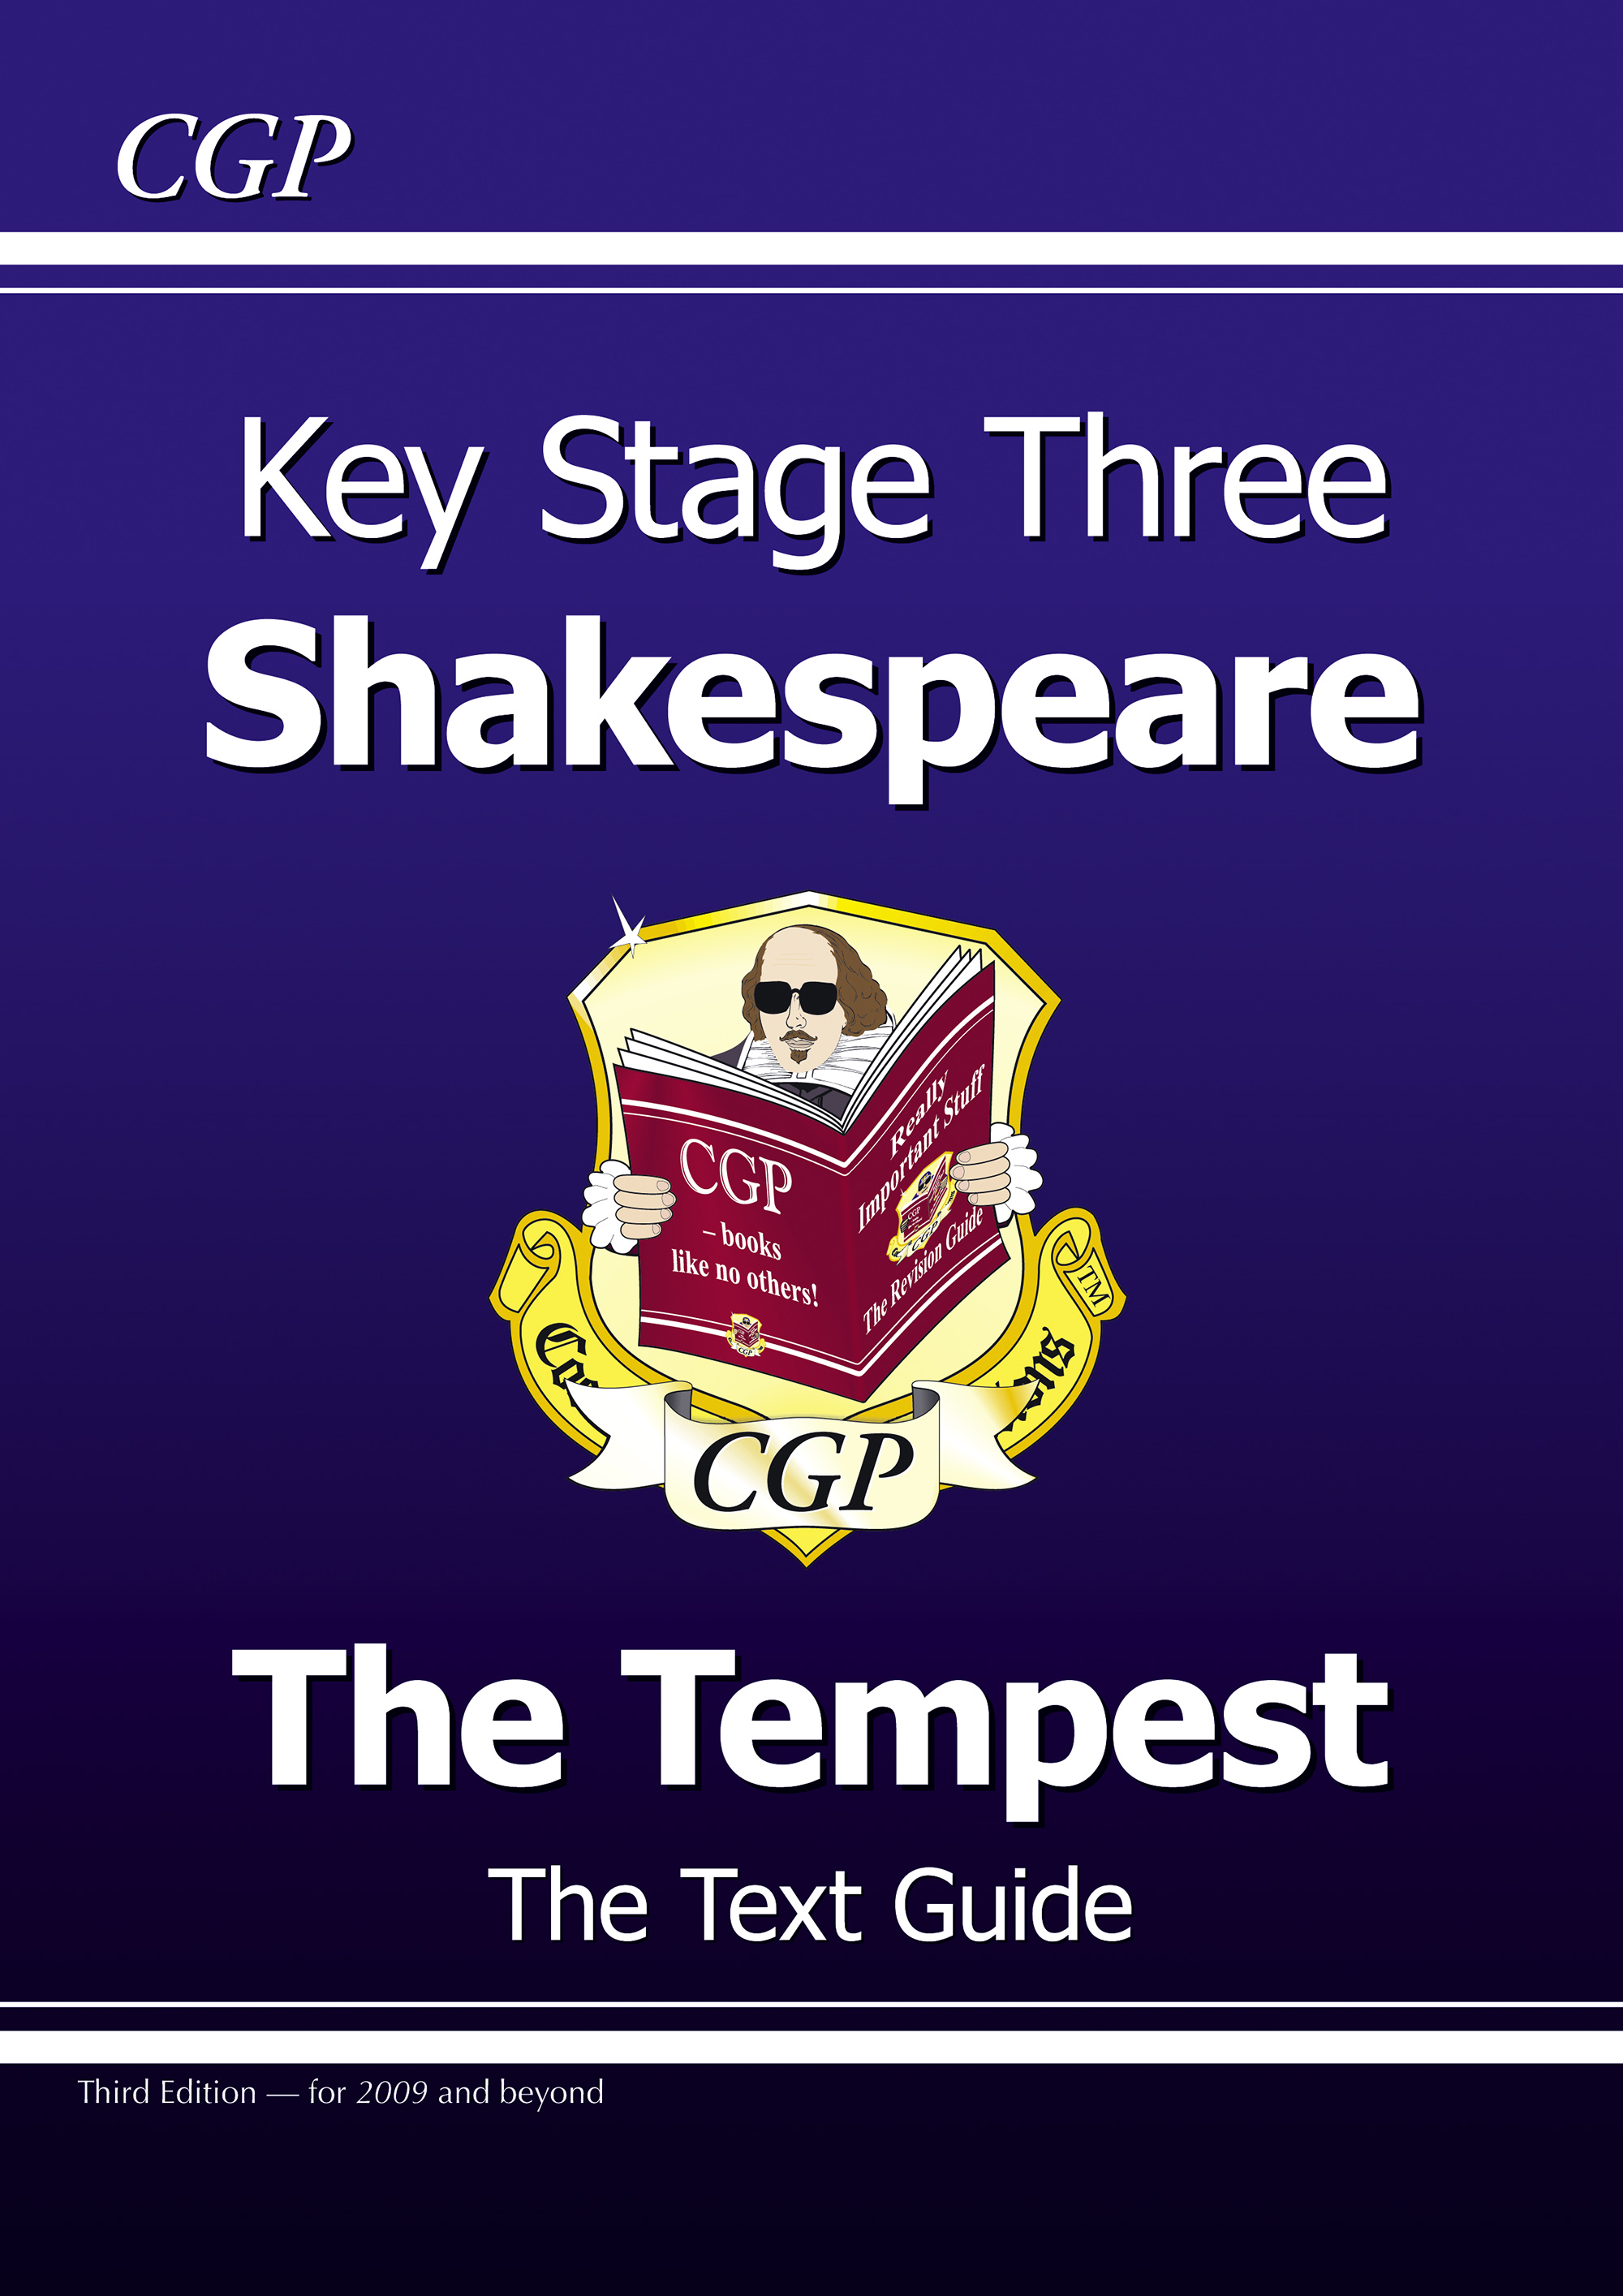 ESTT33 - KS3 English Shakespeare Text Guide - The Tempest